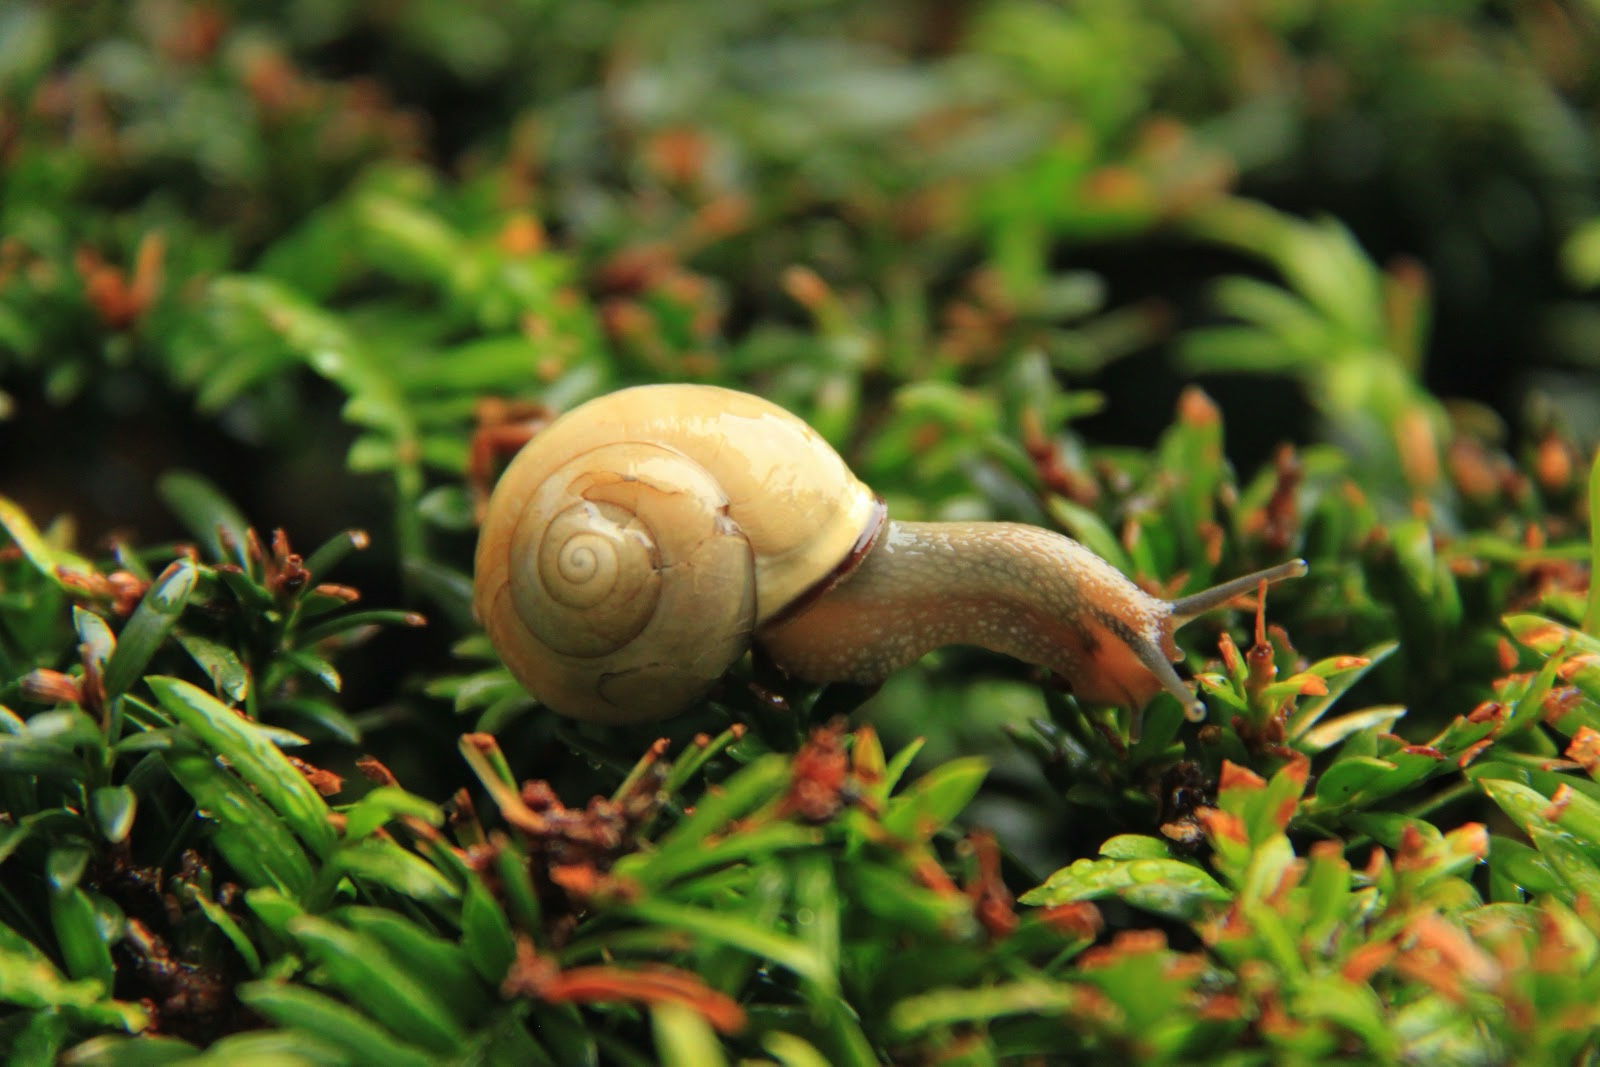 A snail explores some sprouting plants. Source: Cristian Bortes_Flickr_CC BY 2.0